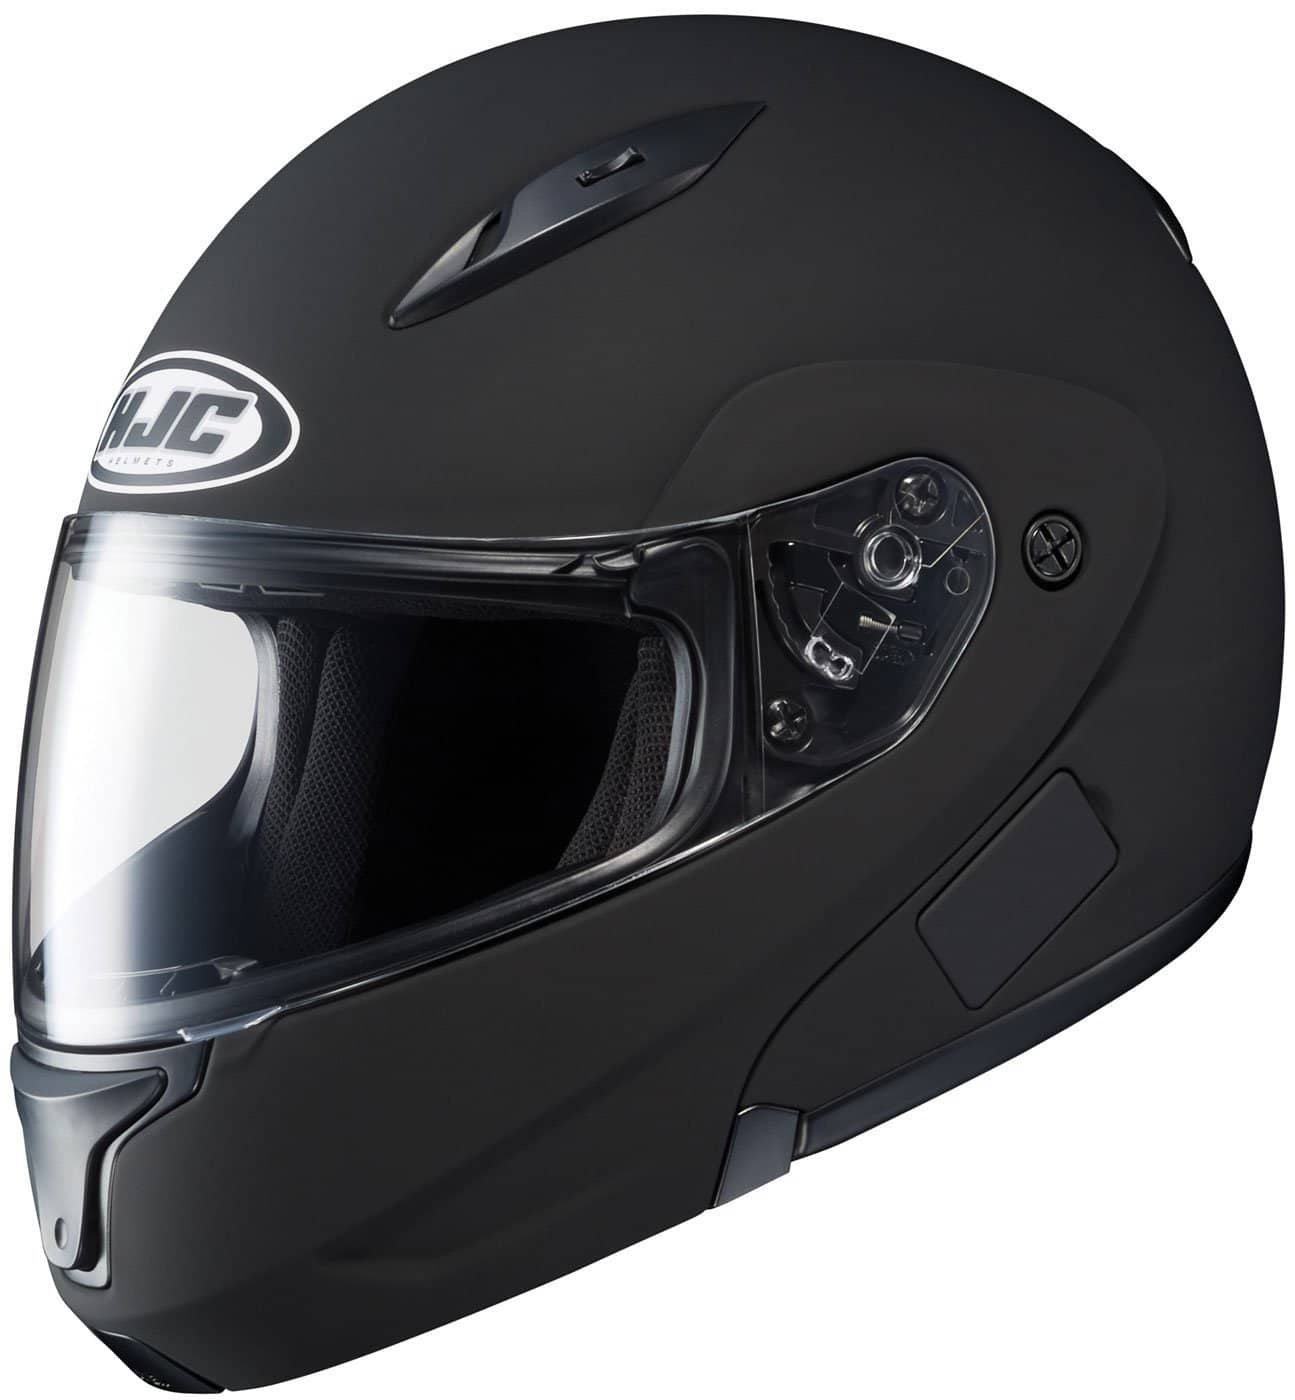 HJC CL-MAXBT II Bluetooth Modular Motorcycle Helmet Review